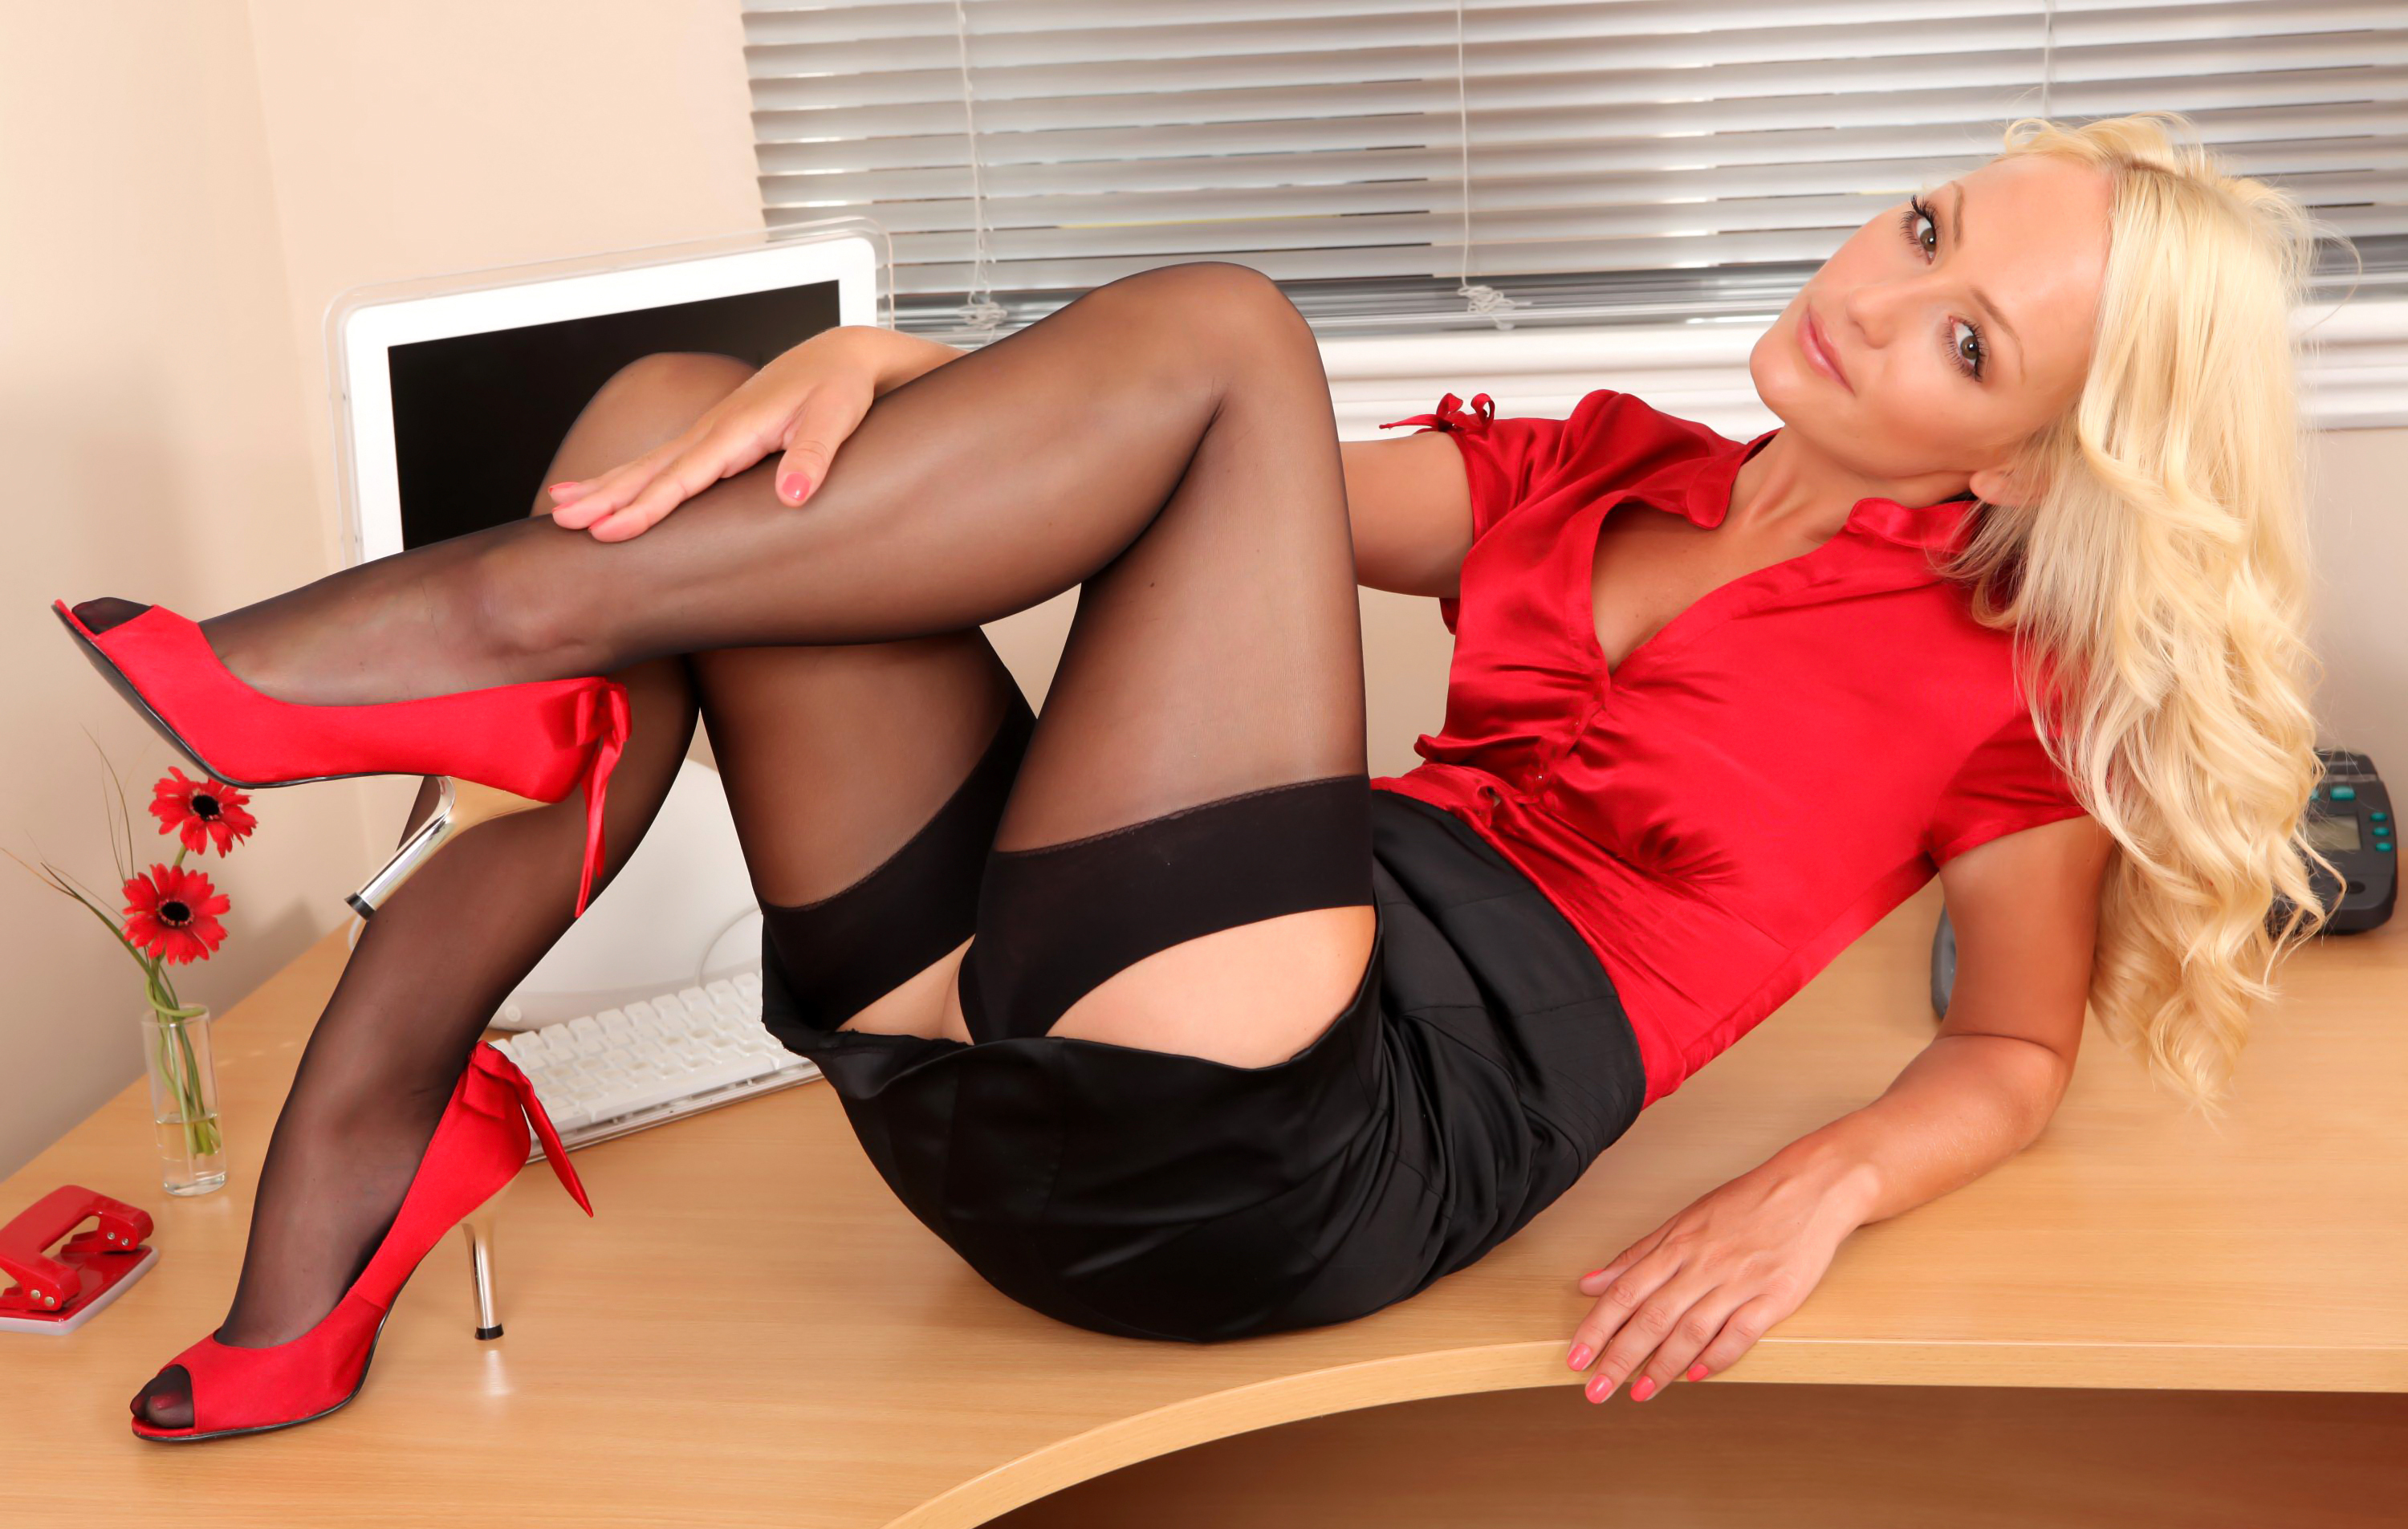 Blonde secretary Keira Nicole spreads fishnet stocking clad legs for oral  2050080